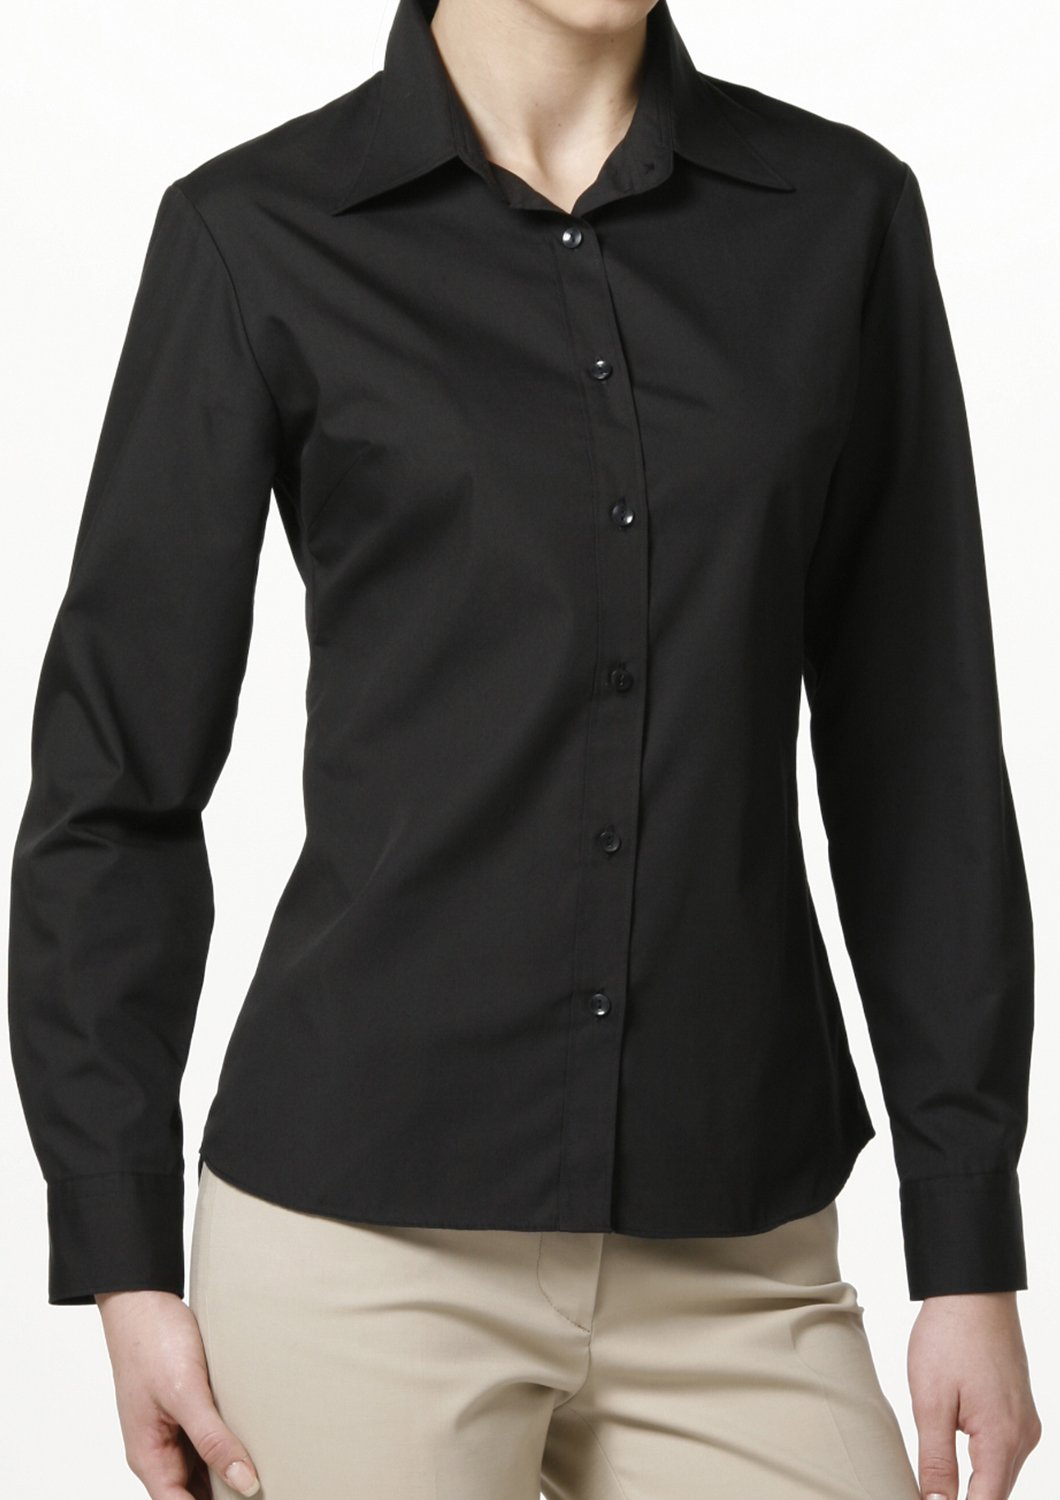 Easy Care Poplin Long Sleeve Shirt Black - LEONIS SHIRTS & FAVORITES